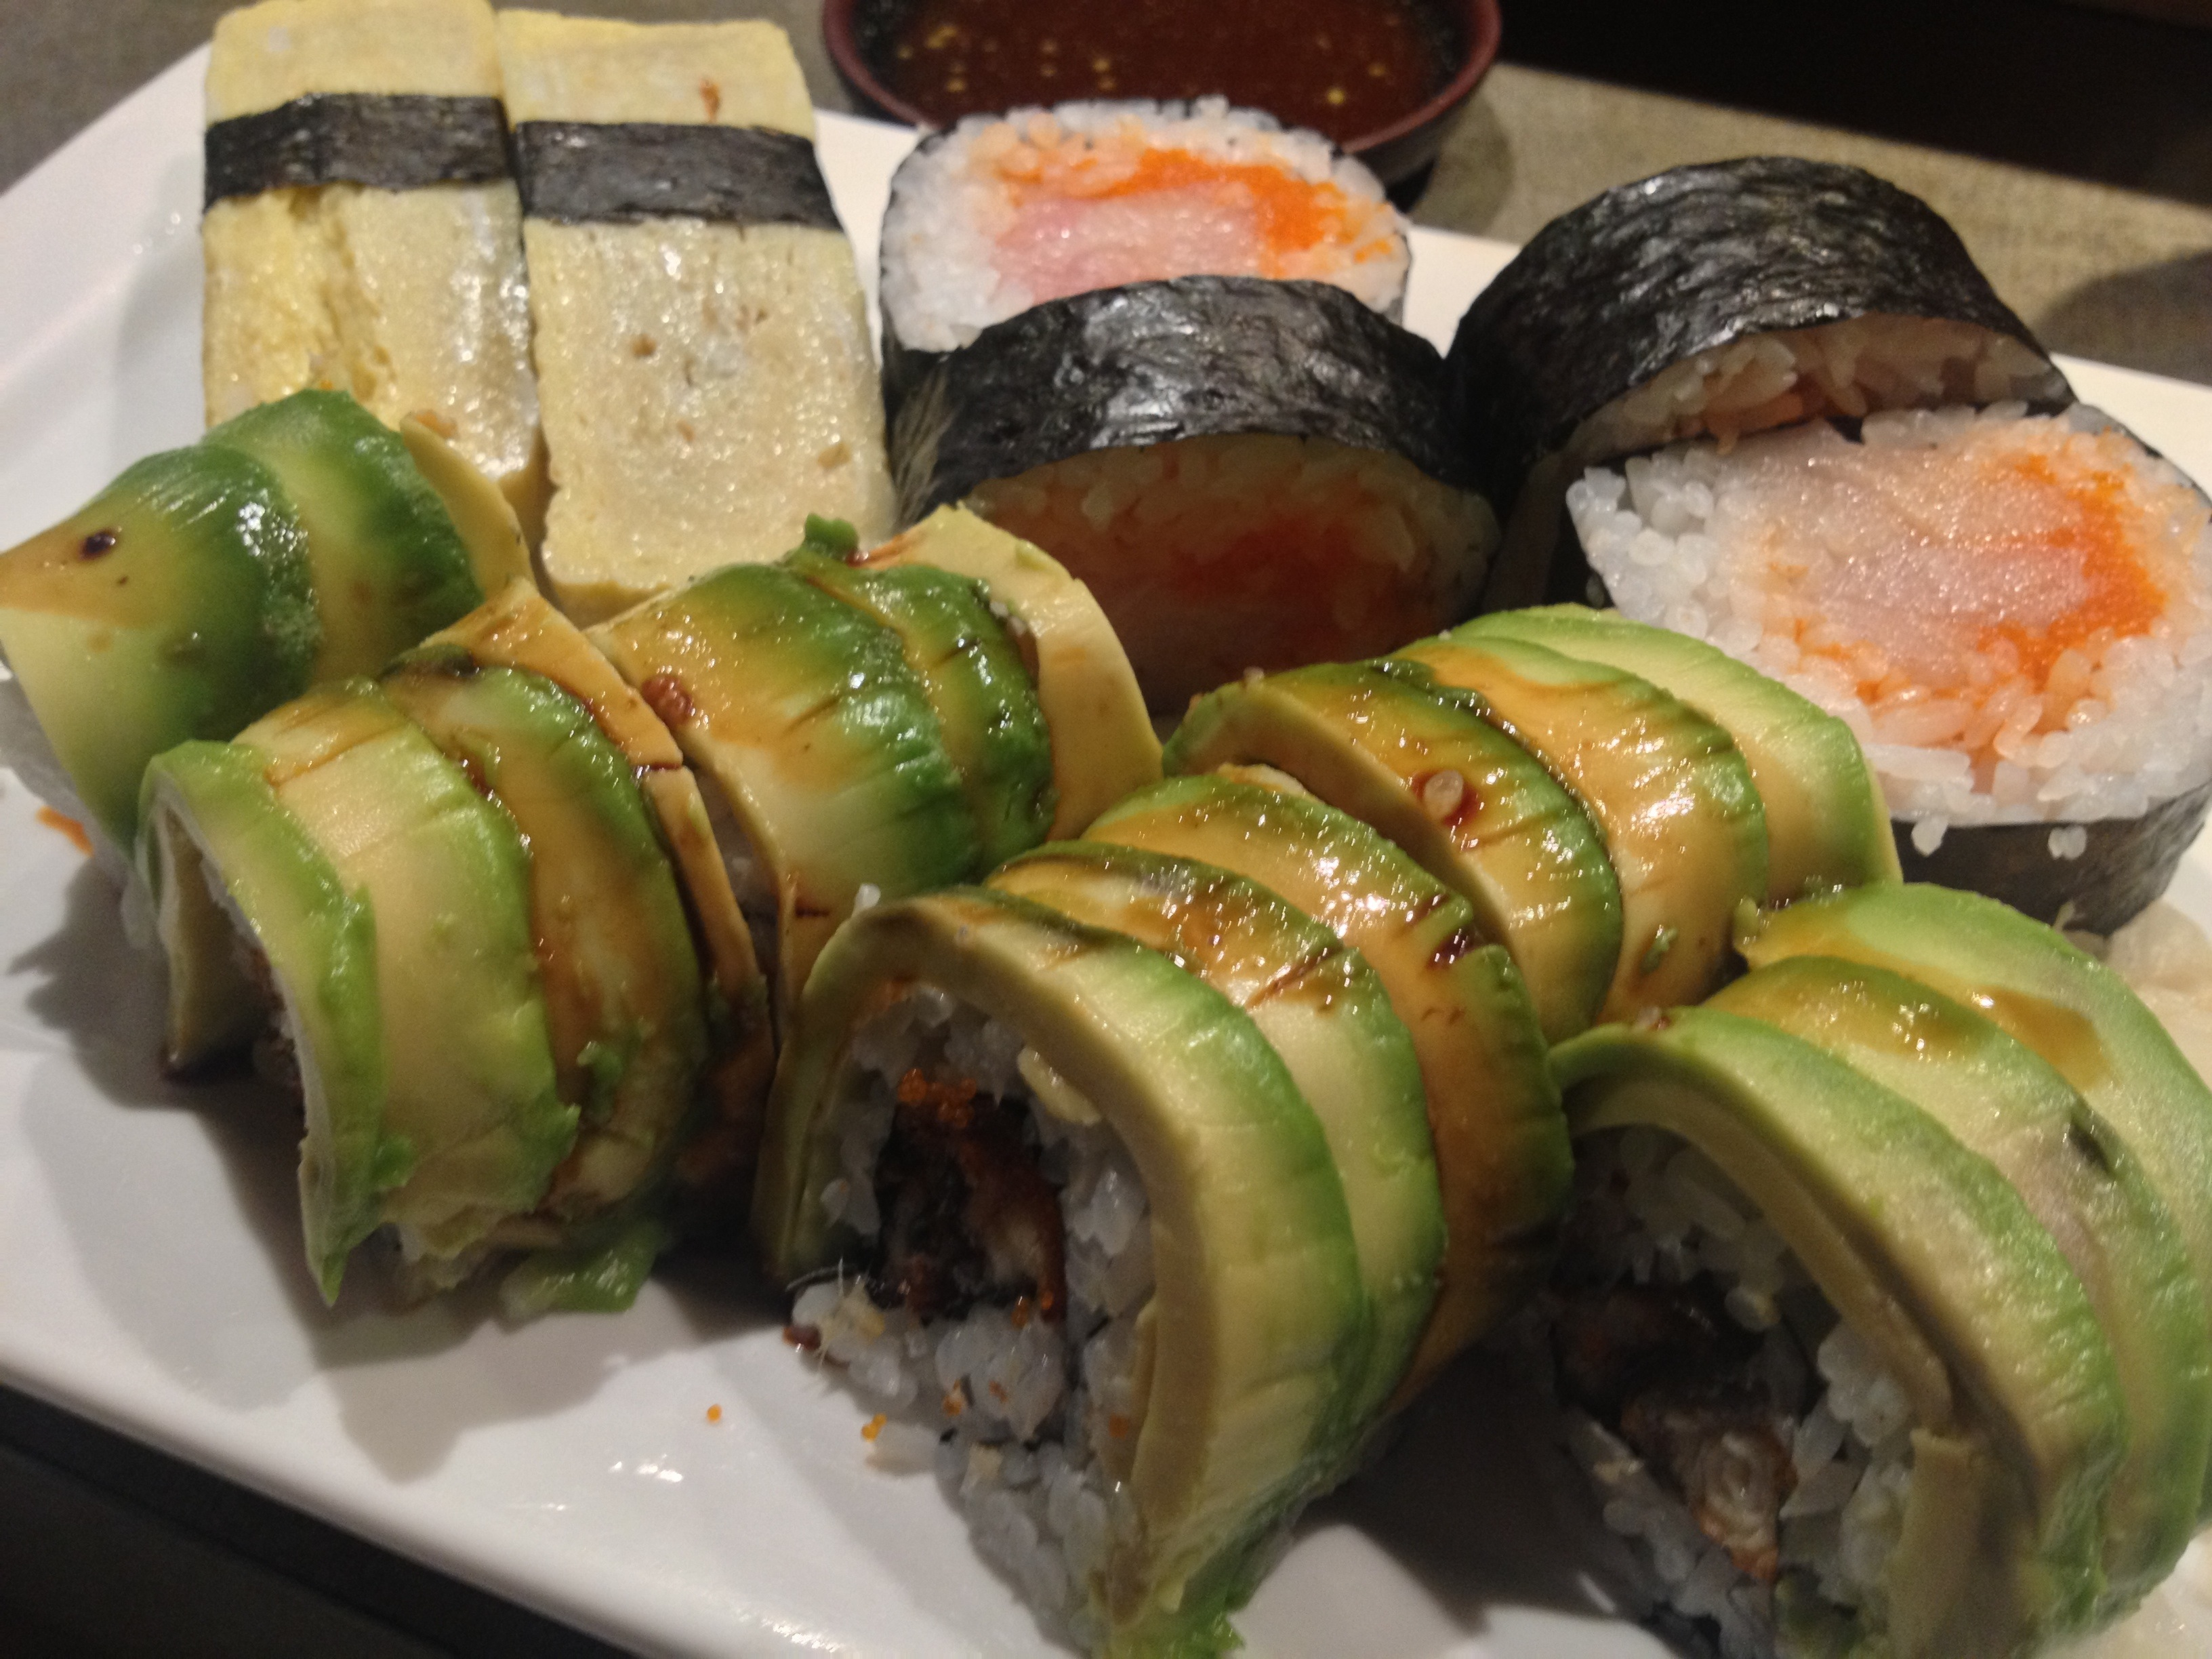 Tamago, Spicy Yellowtail Roll, Caterpillar Roll